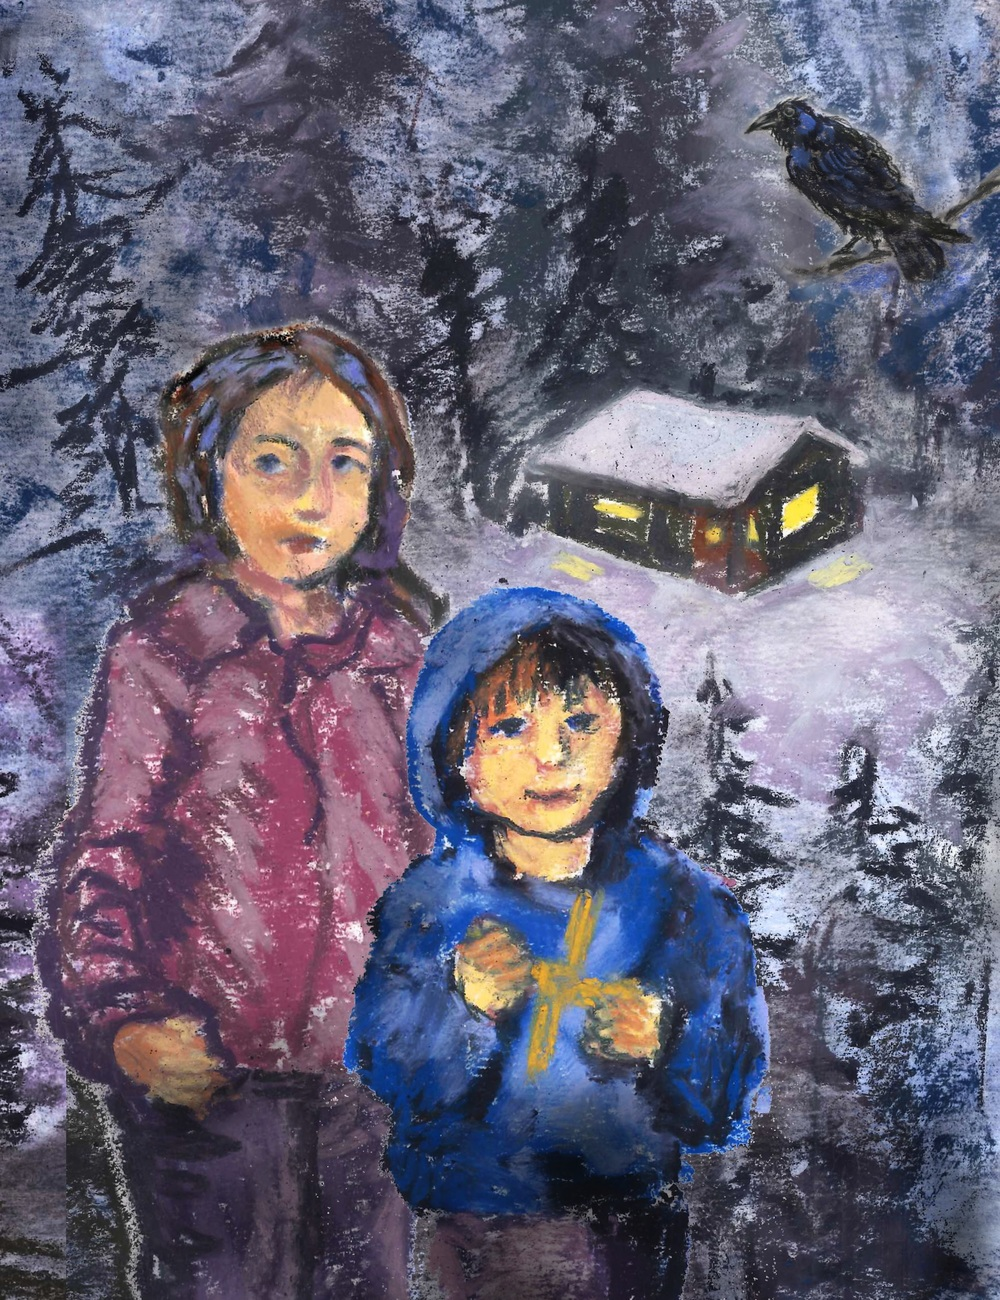 You want a Pagan children's story? Here are some of the beautiful illustrations by Julie Freel from the soon-to-be-published story  Shanna and the Raven . Ten-year-old Shanna and seven-year-old Rye learn to use the magic and energy of Imbolc for protection in a dicey situation.